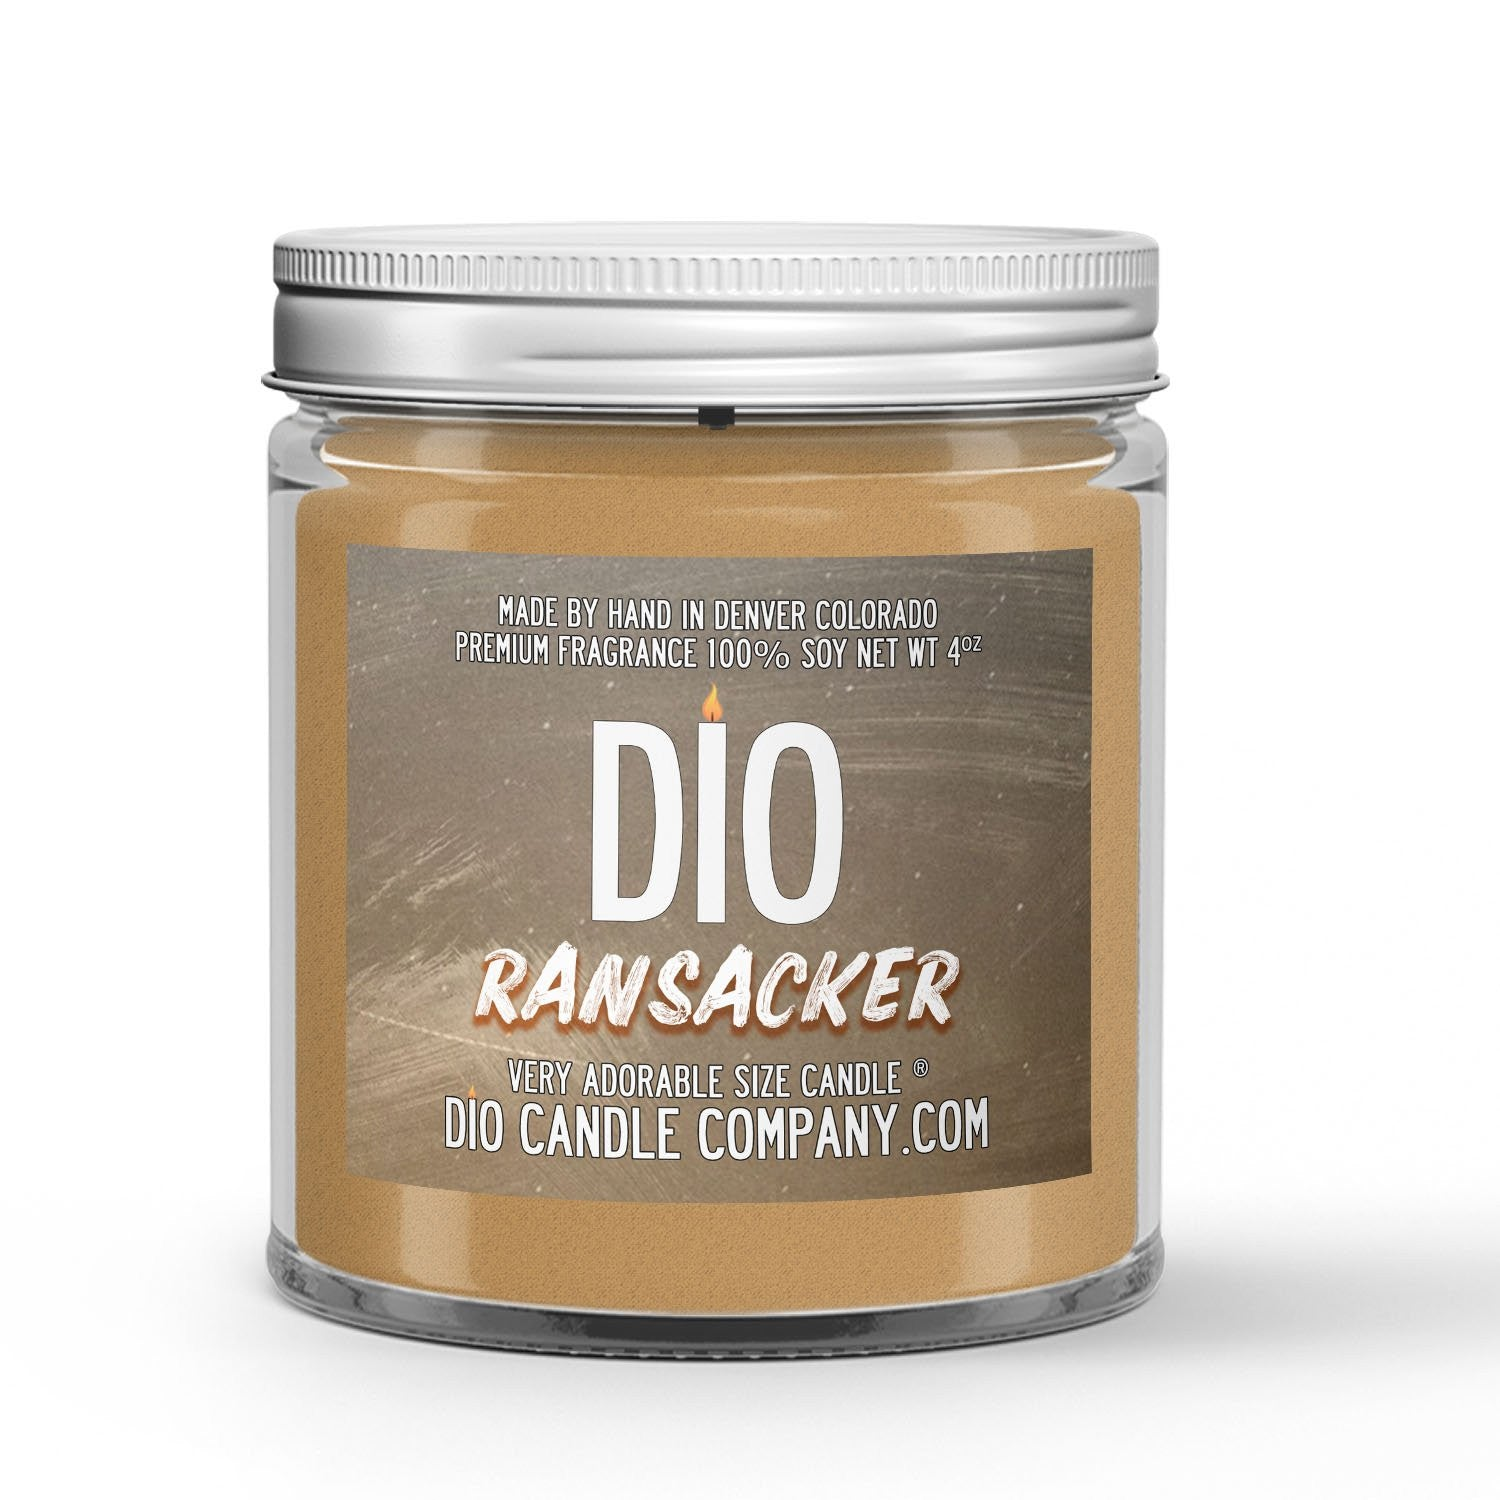 Ransacker Candle - Amber - Wheat - Cinnamon - Clove - 4oz Very Adorable Size Candle® - Dio Candle Company